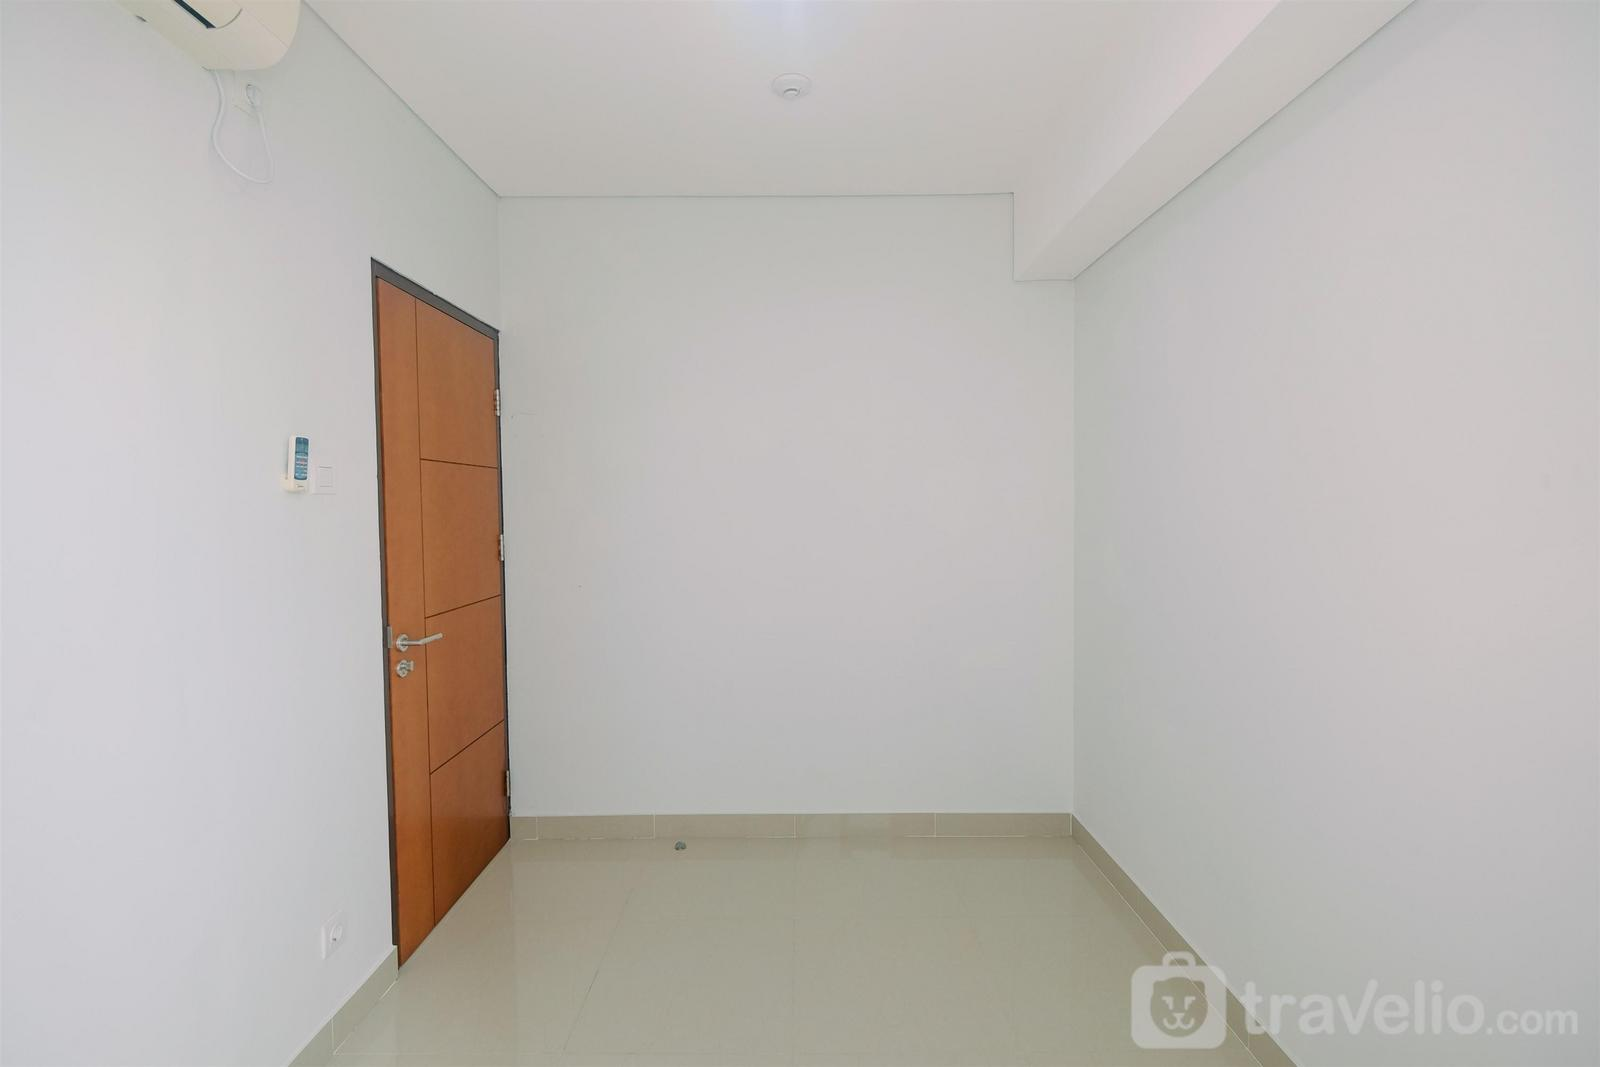 Apartemen Royal Olive Residence - Unfurnished 1BR Apartment 25th Floor Royal Olive Residence with AC By Travelio